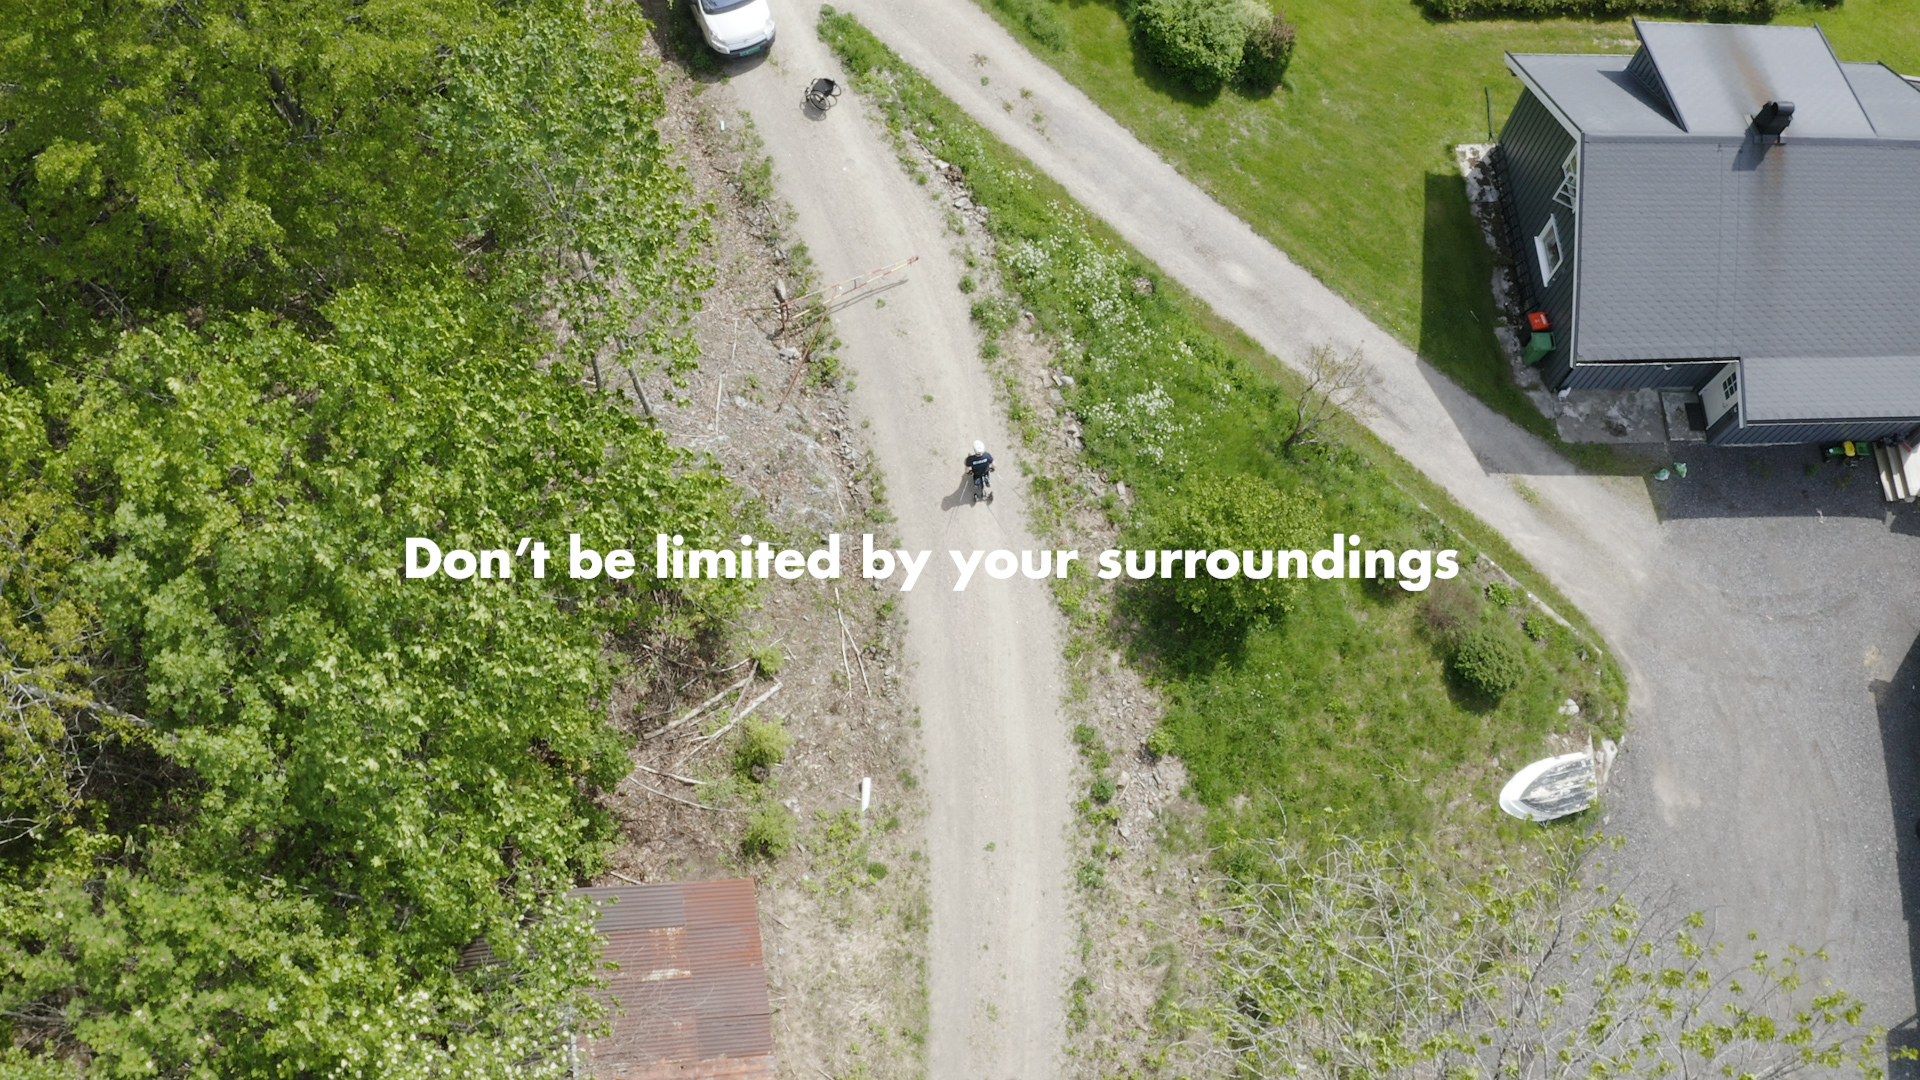 Don't Be limited by your surroundings